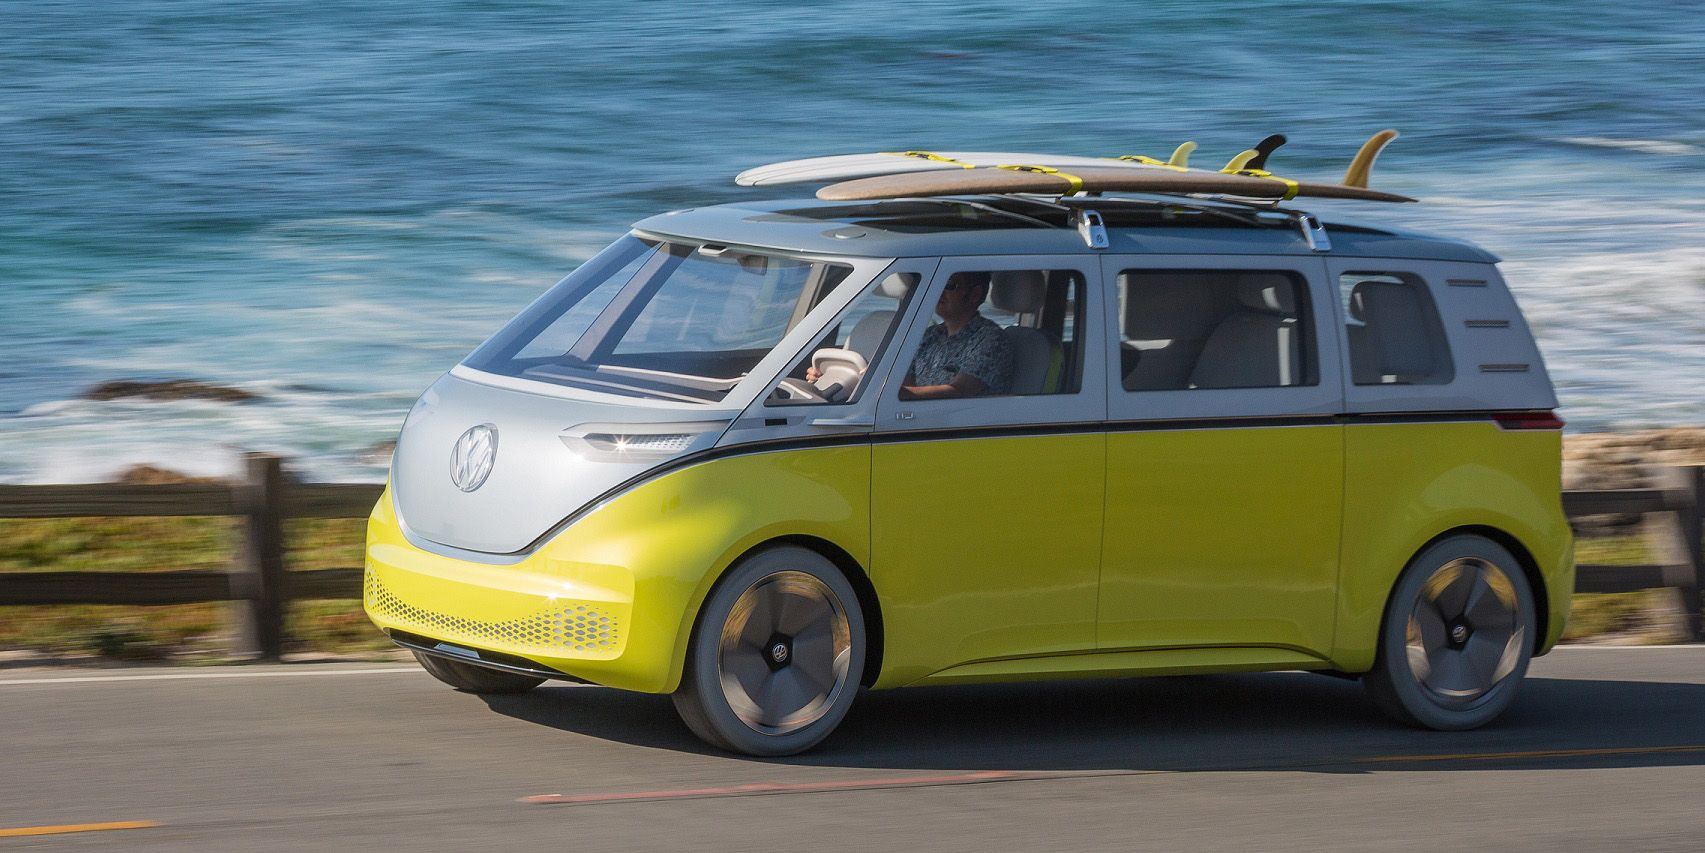 2018 Vw Bus Release Date >> New Volkswagen Microbus Vw To Build New Electric Bus